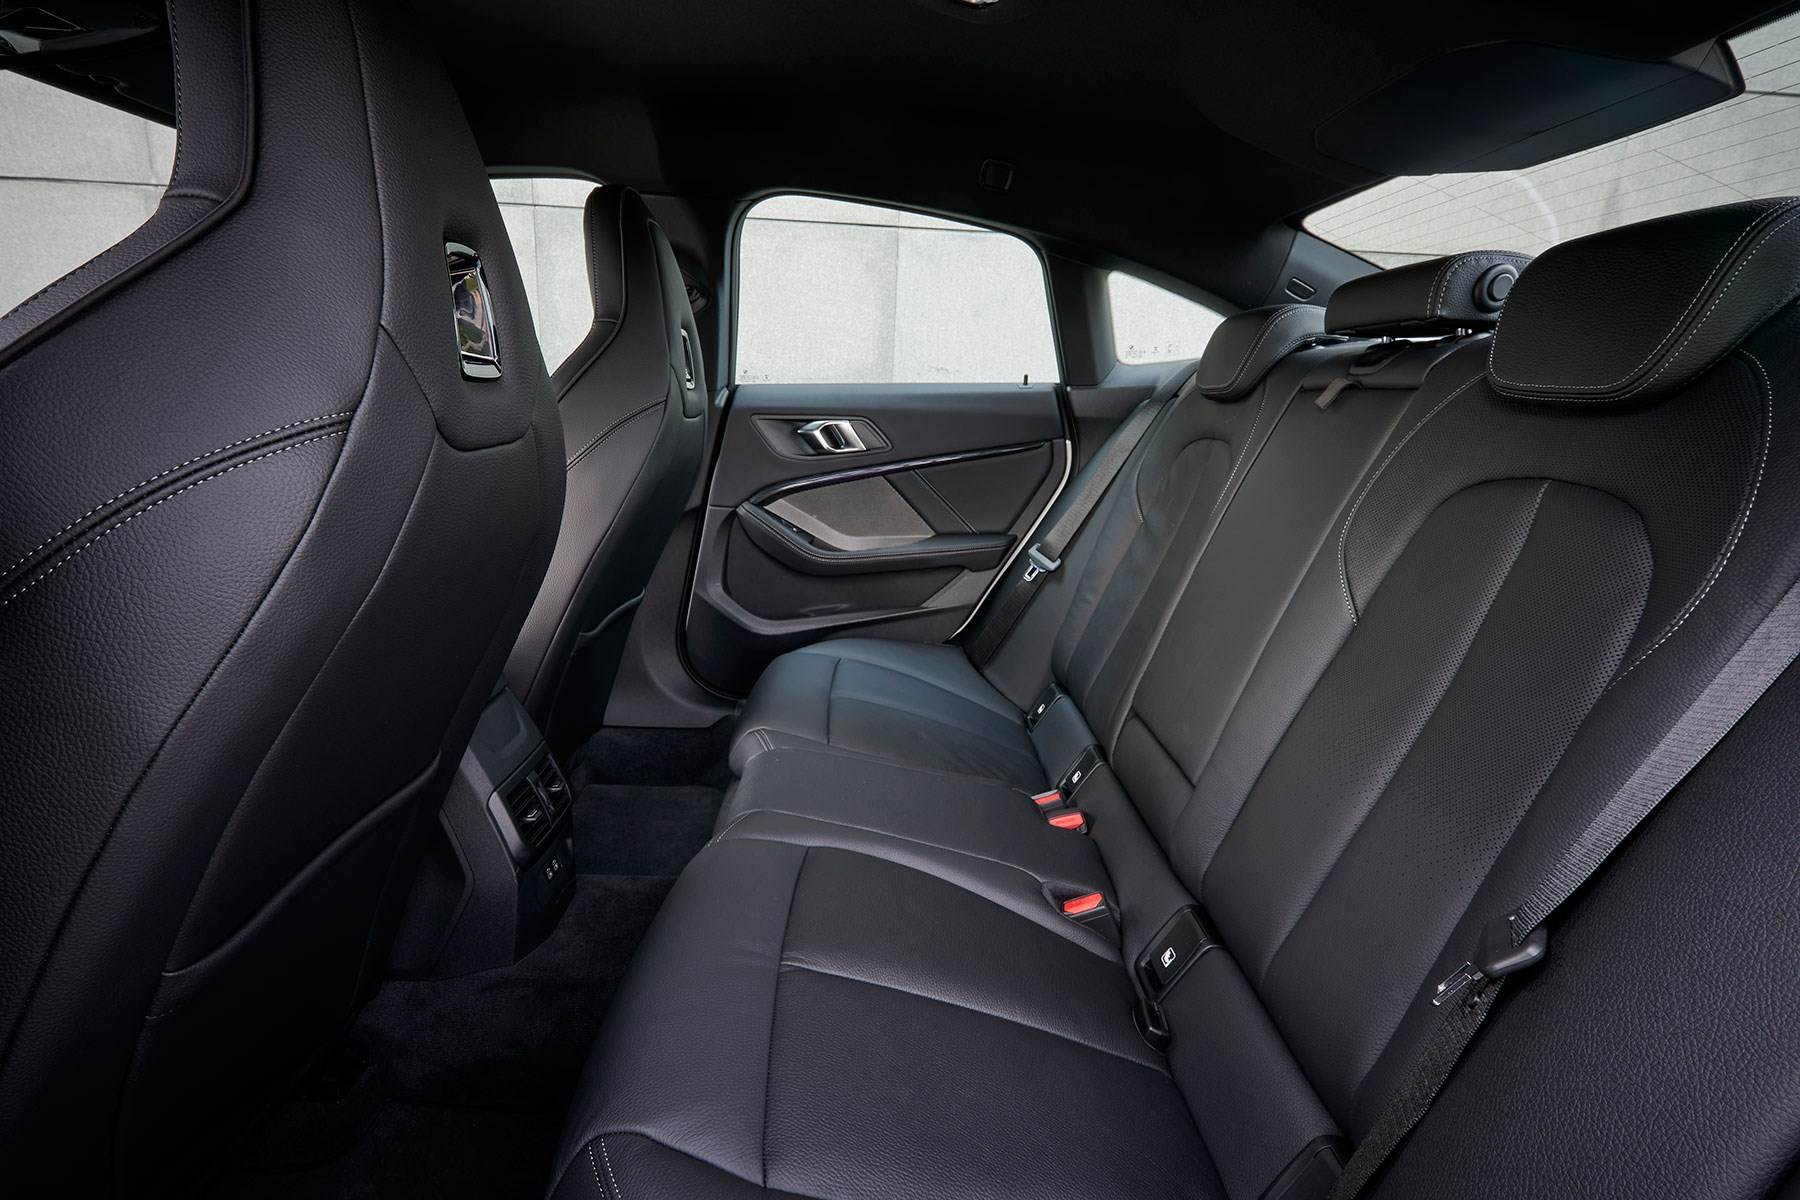 BMW 2-series Gran Coupe rear seats: quite tight on space